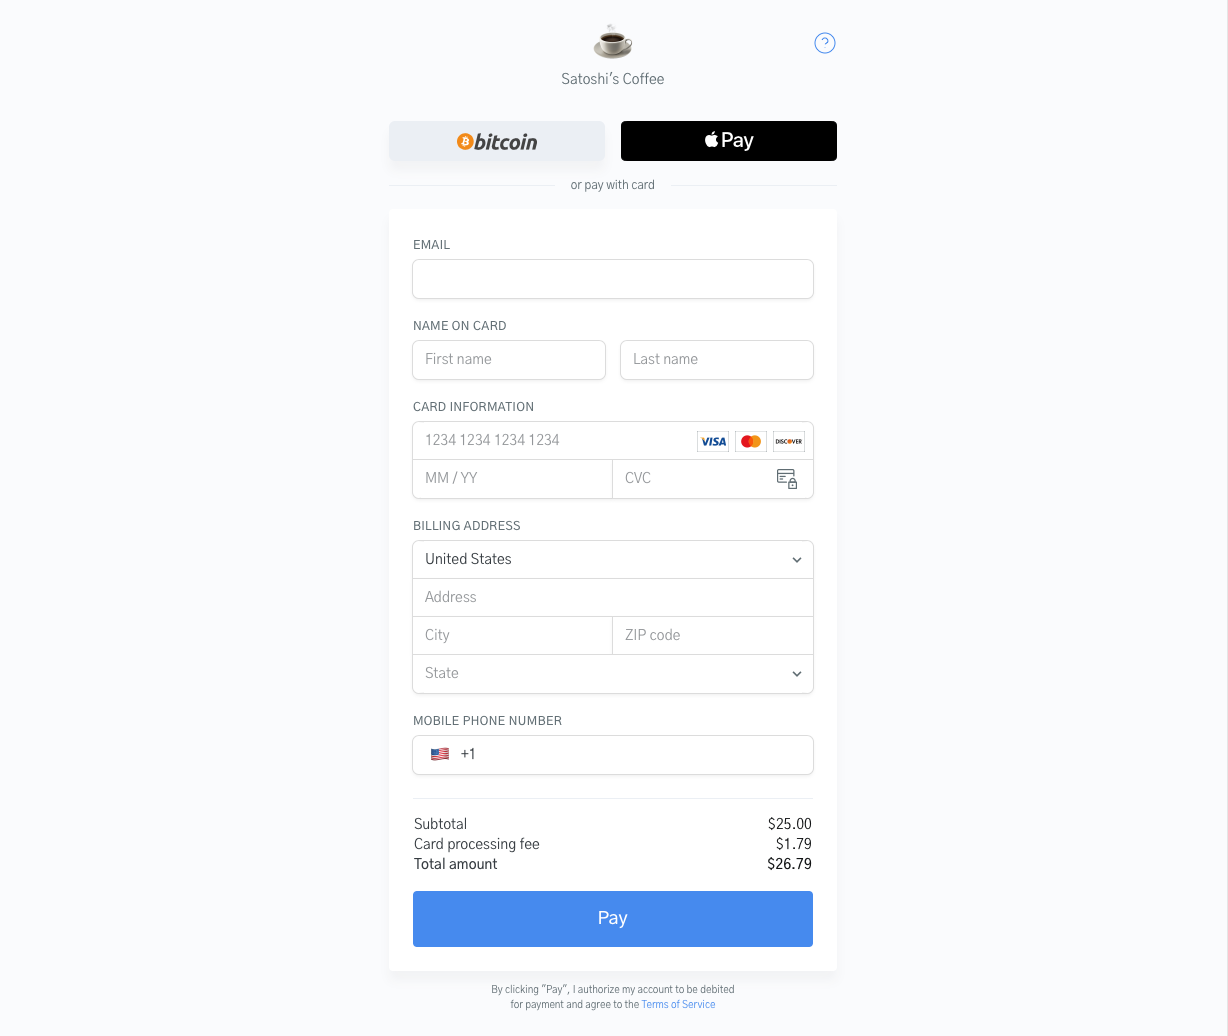 Image of the OpenNode Debit Card and Credit Card checkout